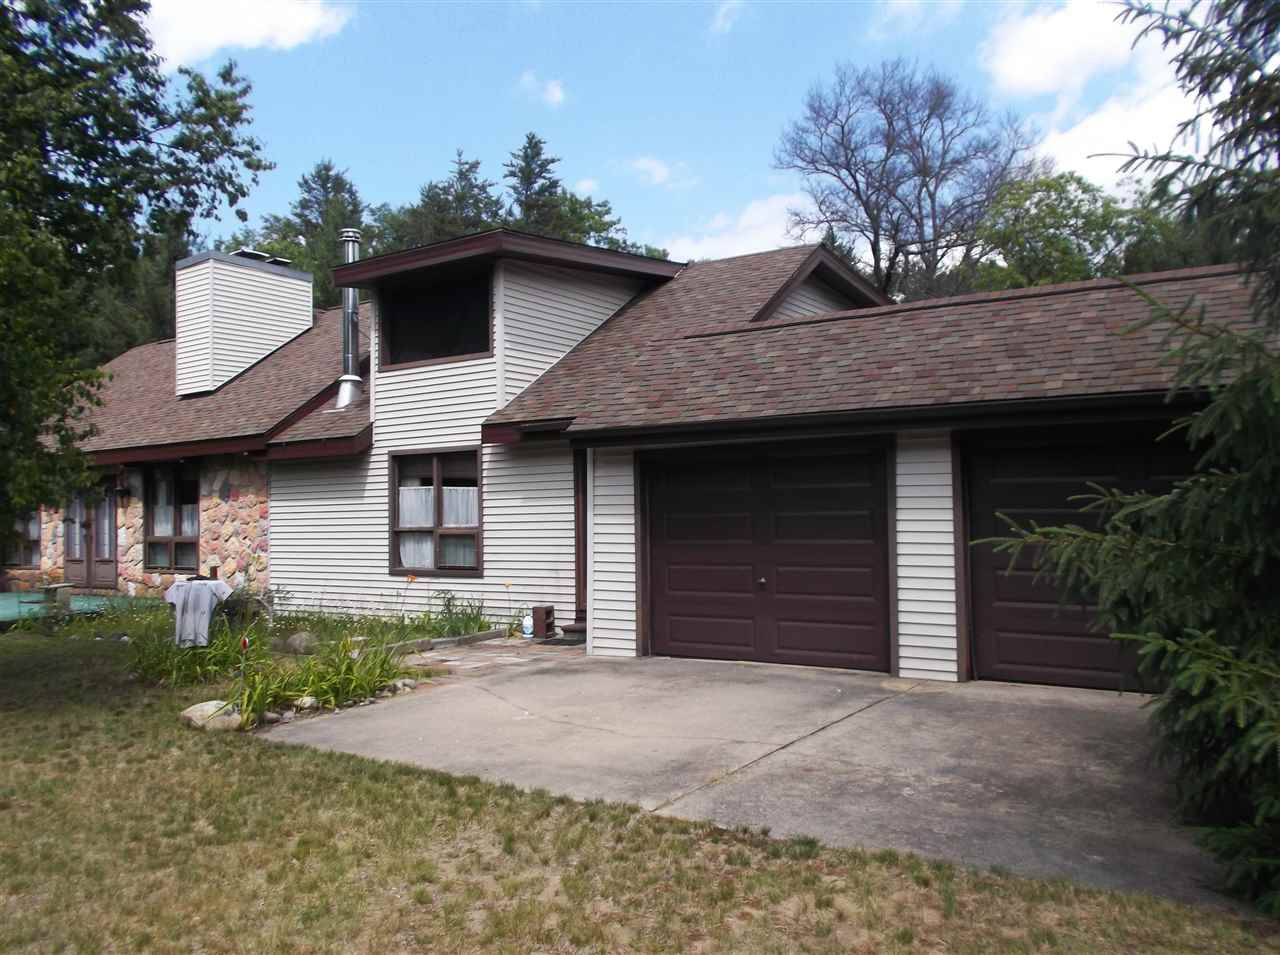 11269 tanglewood dr roscommon mi 48653 recently sold trulia